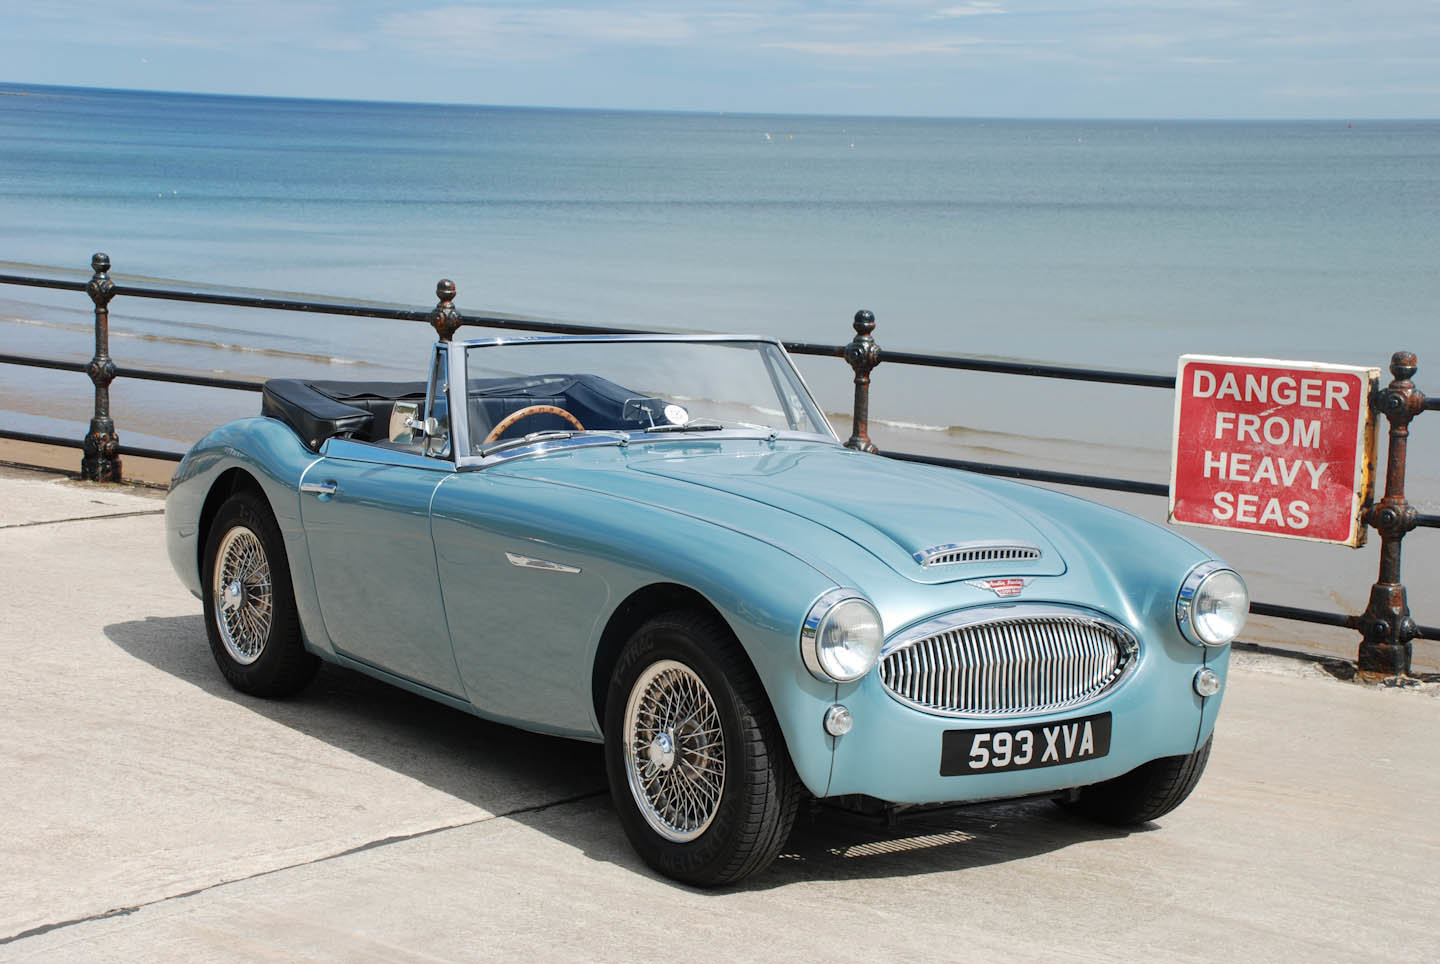 1962 Austin Healey 3000 Mk 2a BJ7 For Sale (picture 1 of 10)